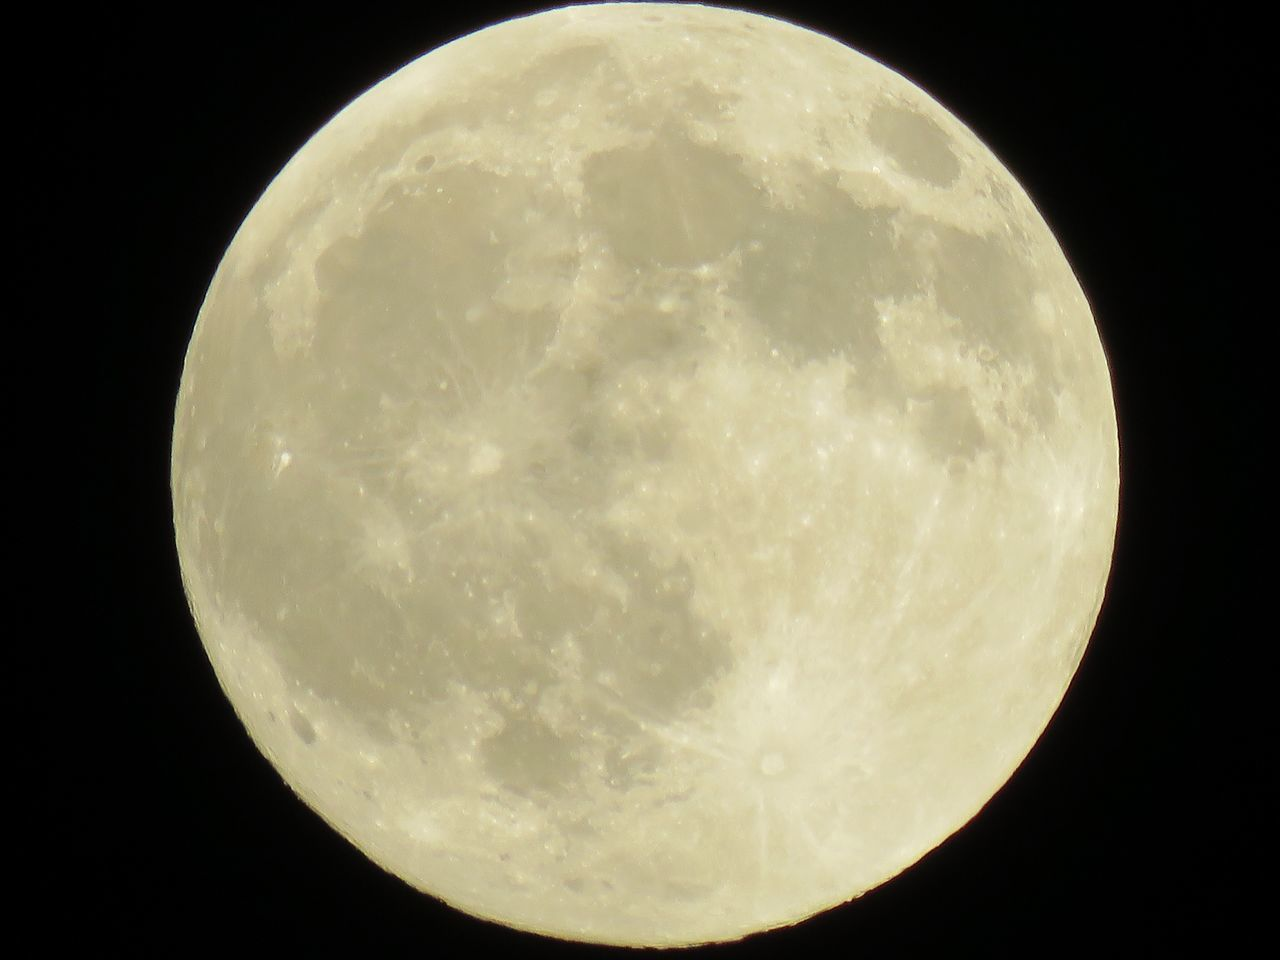 """A full moon in August is called """"sturgeon moon"""" ( Info from PACIFIC PRESS/GETTY) The full moon that will rise in the sky on 18 August 2016 is known as the """"Full Sturgeon Moon"""". It may sound strange to associate Earth's natural satellite with a fish, but the origins of this tradition are ancient, and find their roots in native American cultures of the past. Ancient tribes of native Americans indeed gave poetic, colourful names to each full moon of the year. These denominations reflected the changes happening in their natural environment. JustGPhotos Full Sturgeon Moon August 2016 Moon Full Moon No Edit/no Filter Moon Moon_collection Lunar Earth's Satalight Earth's Moon Canonphotography North Carolina Moon Pivotal Ideas Color Palette"""